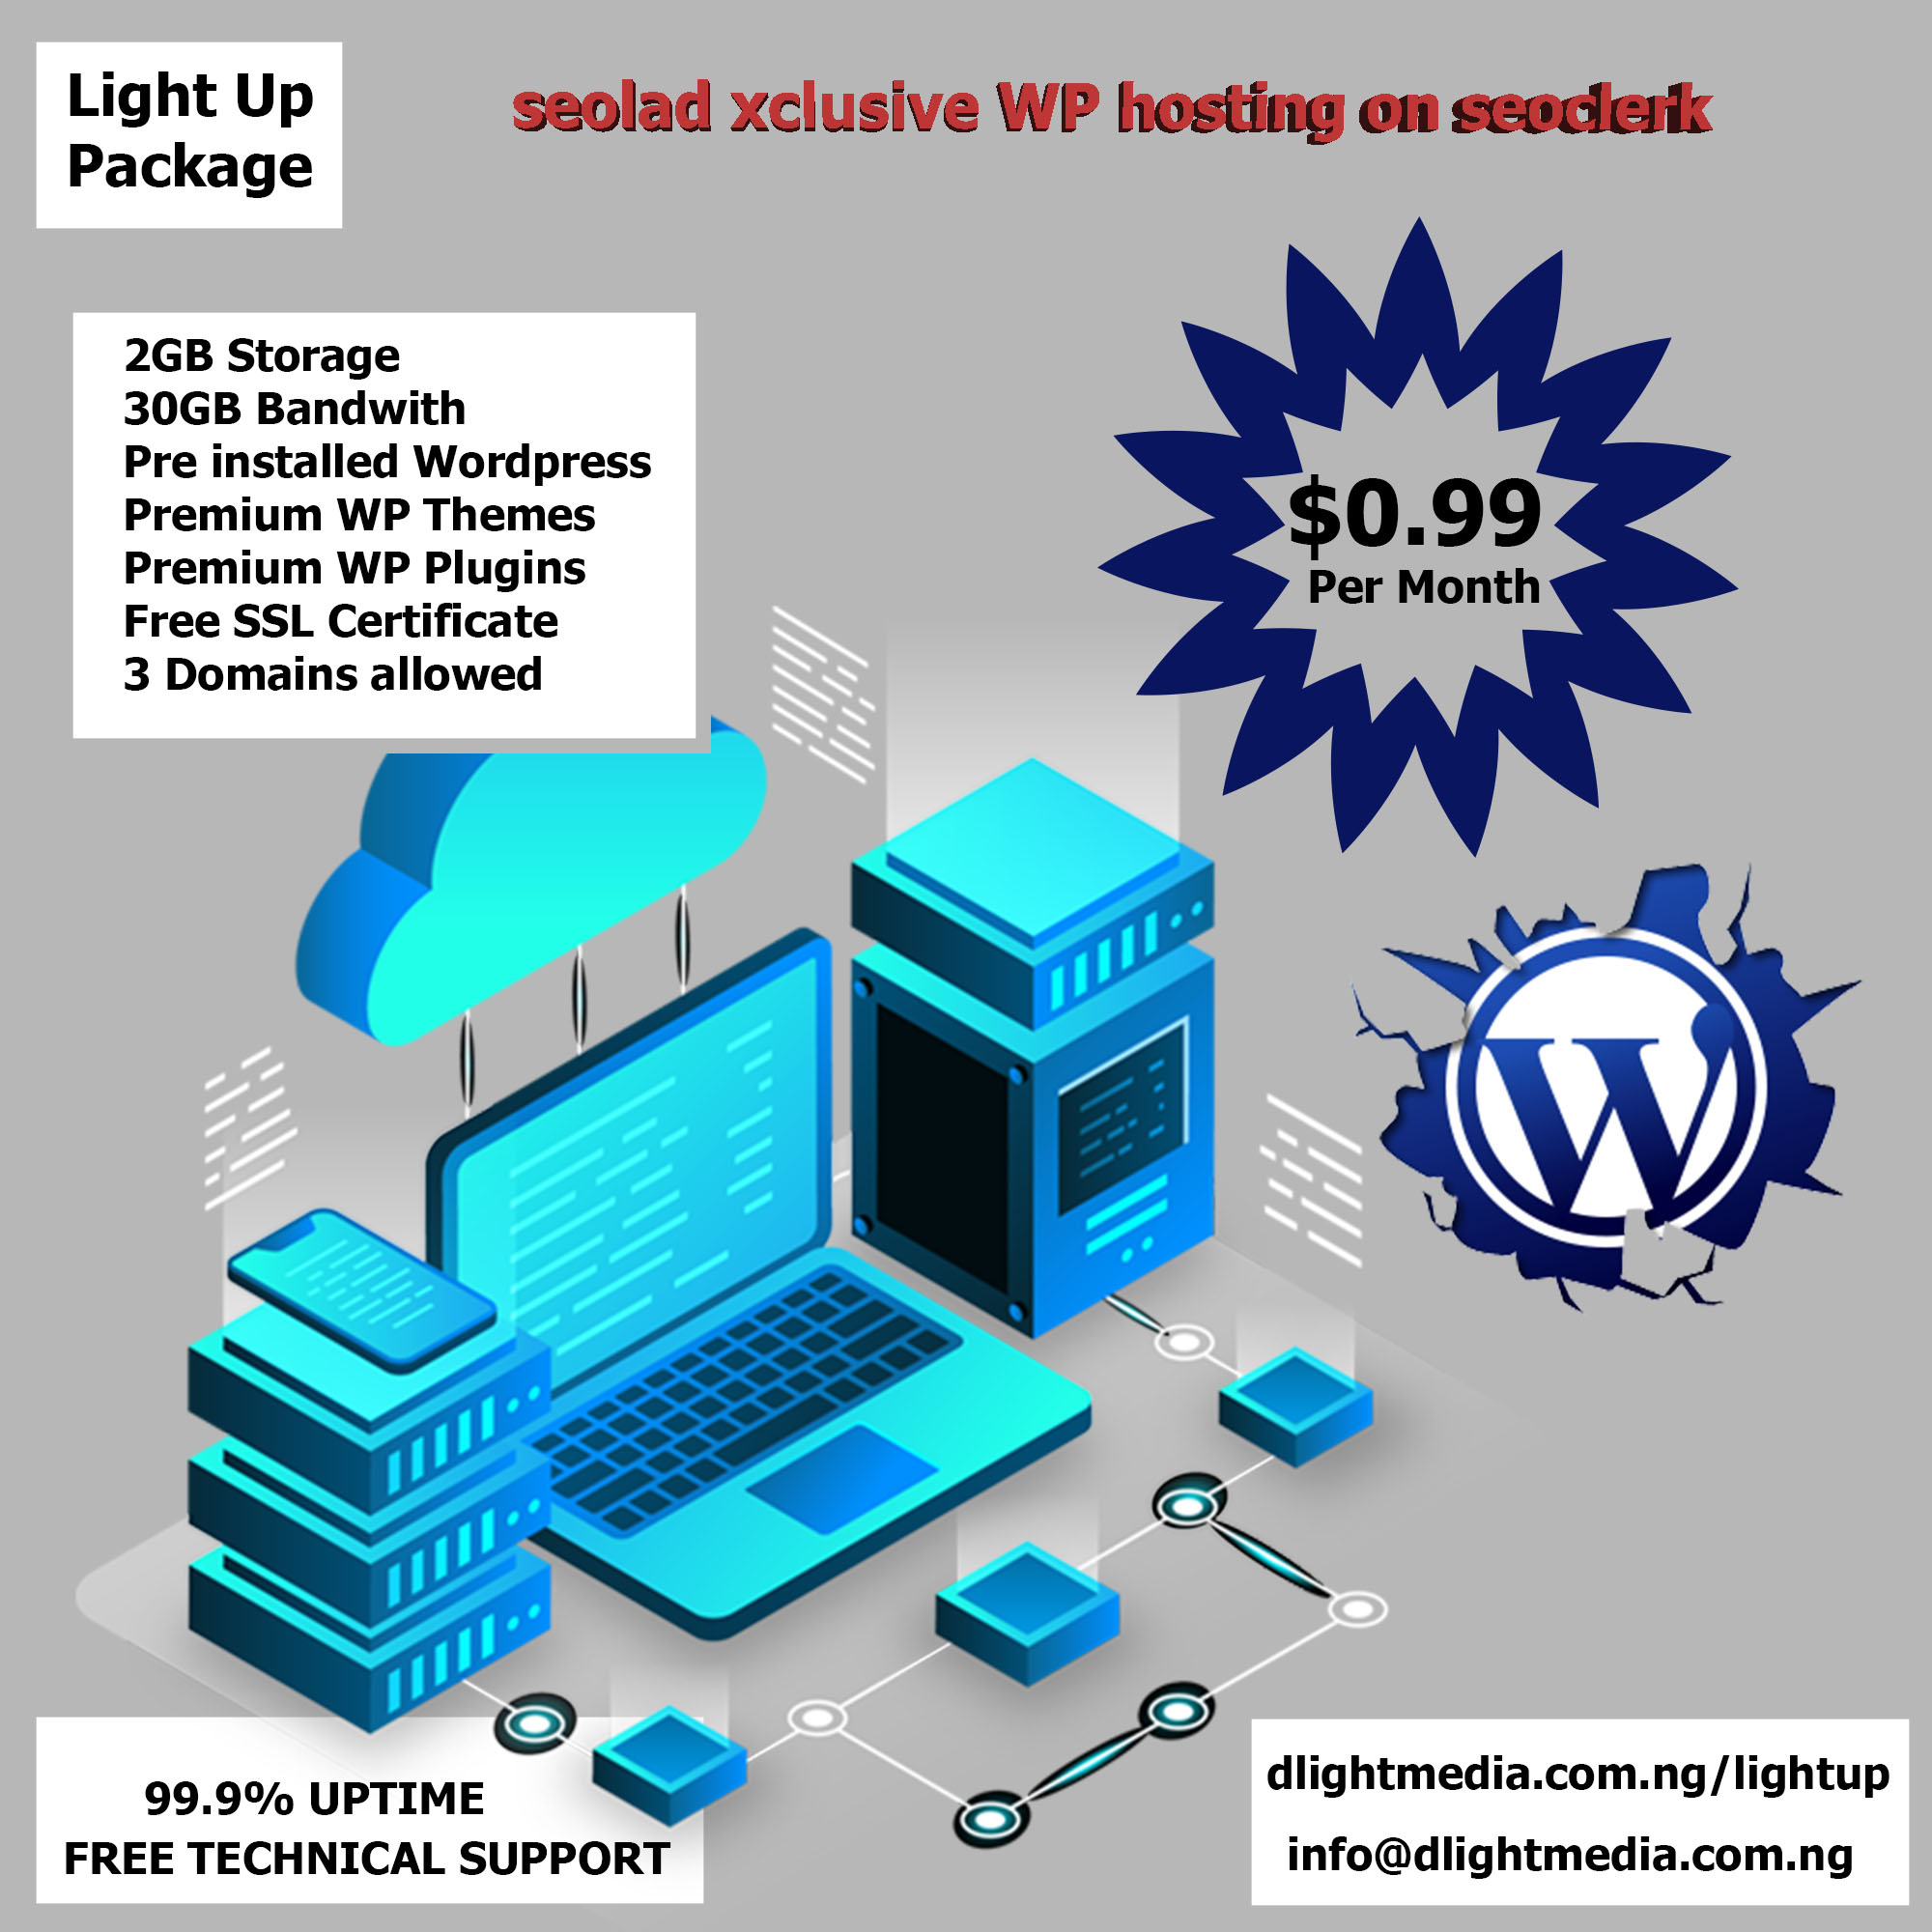 A Very Good Quality WP Hosting plus Premium themes and plugins